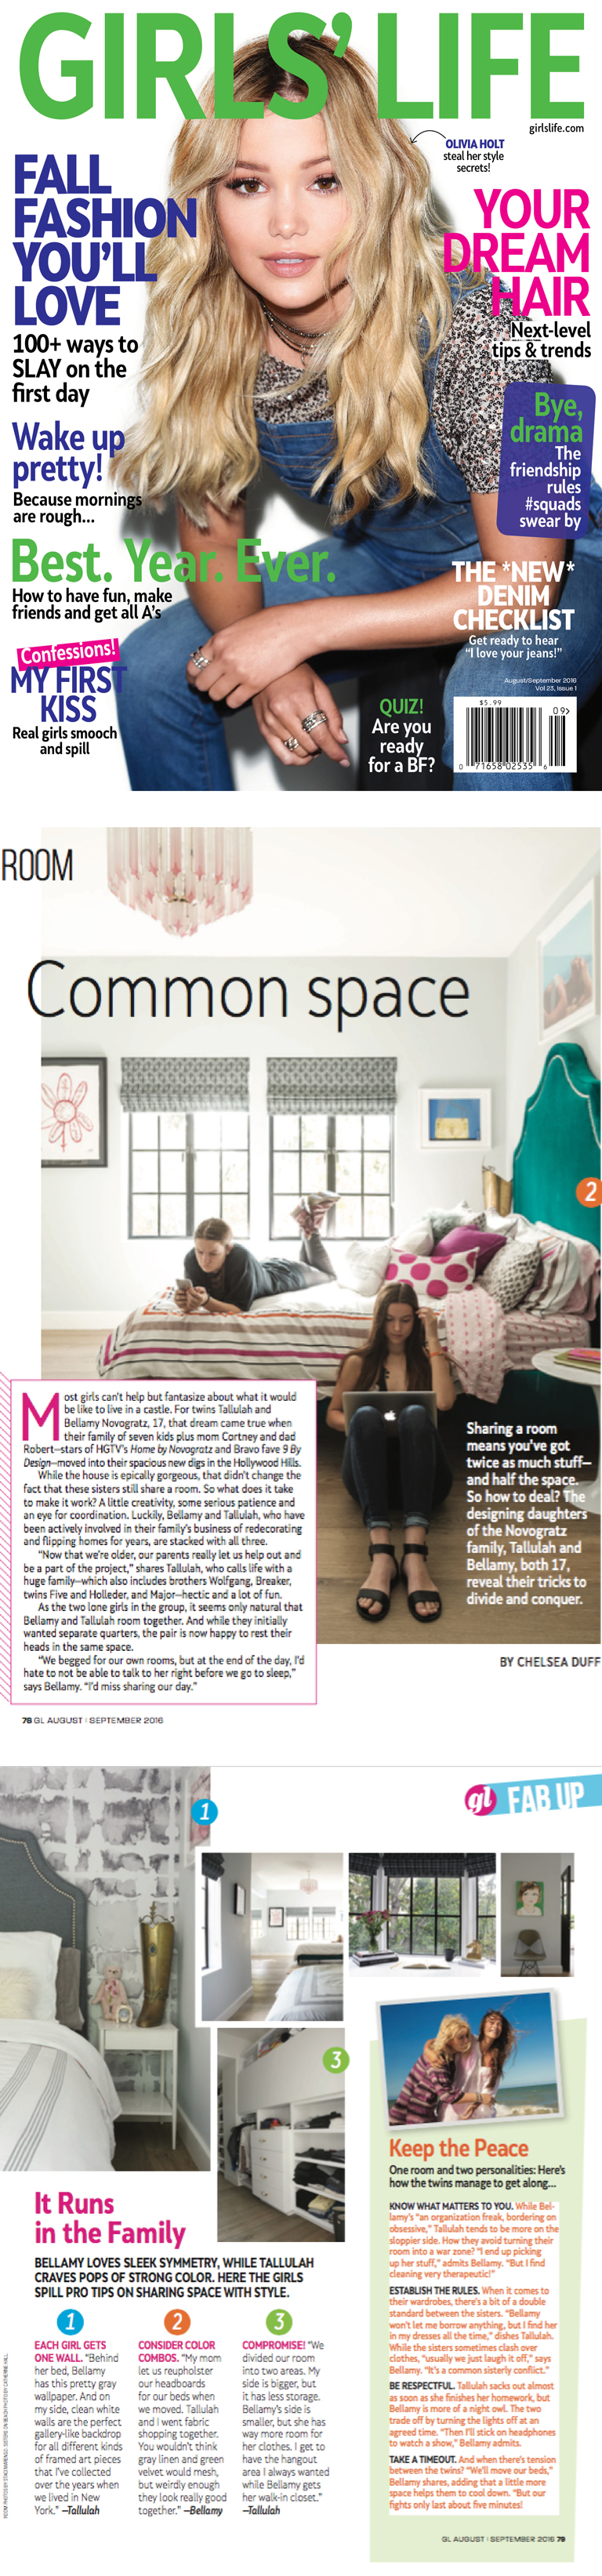 Girls Life | Common Space